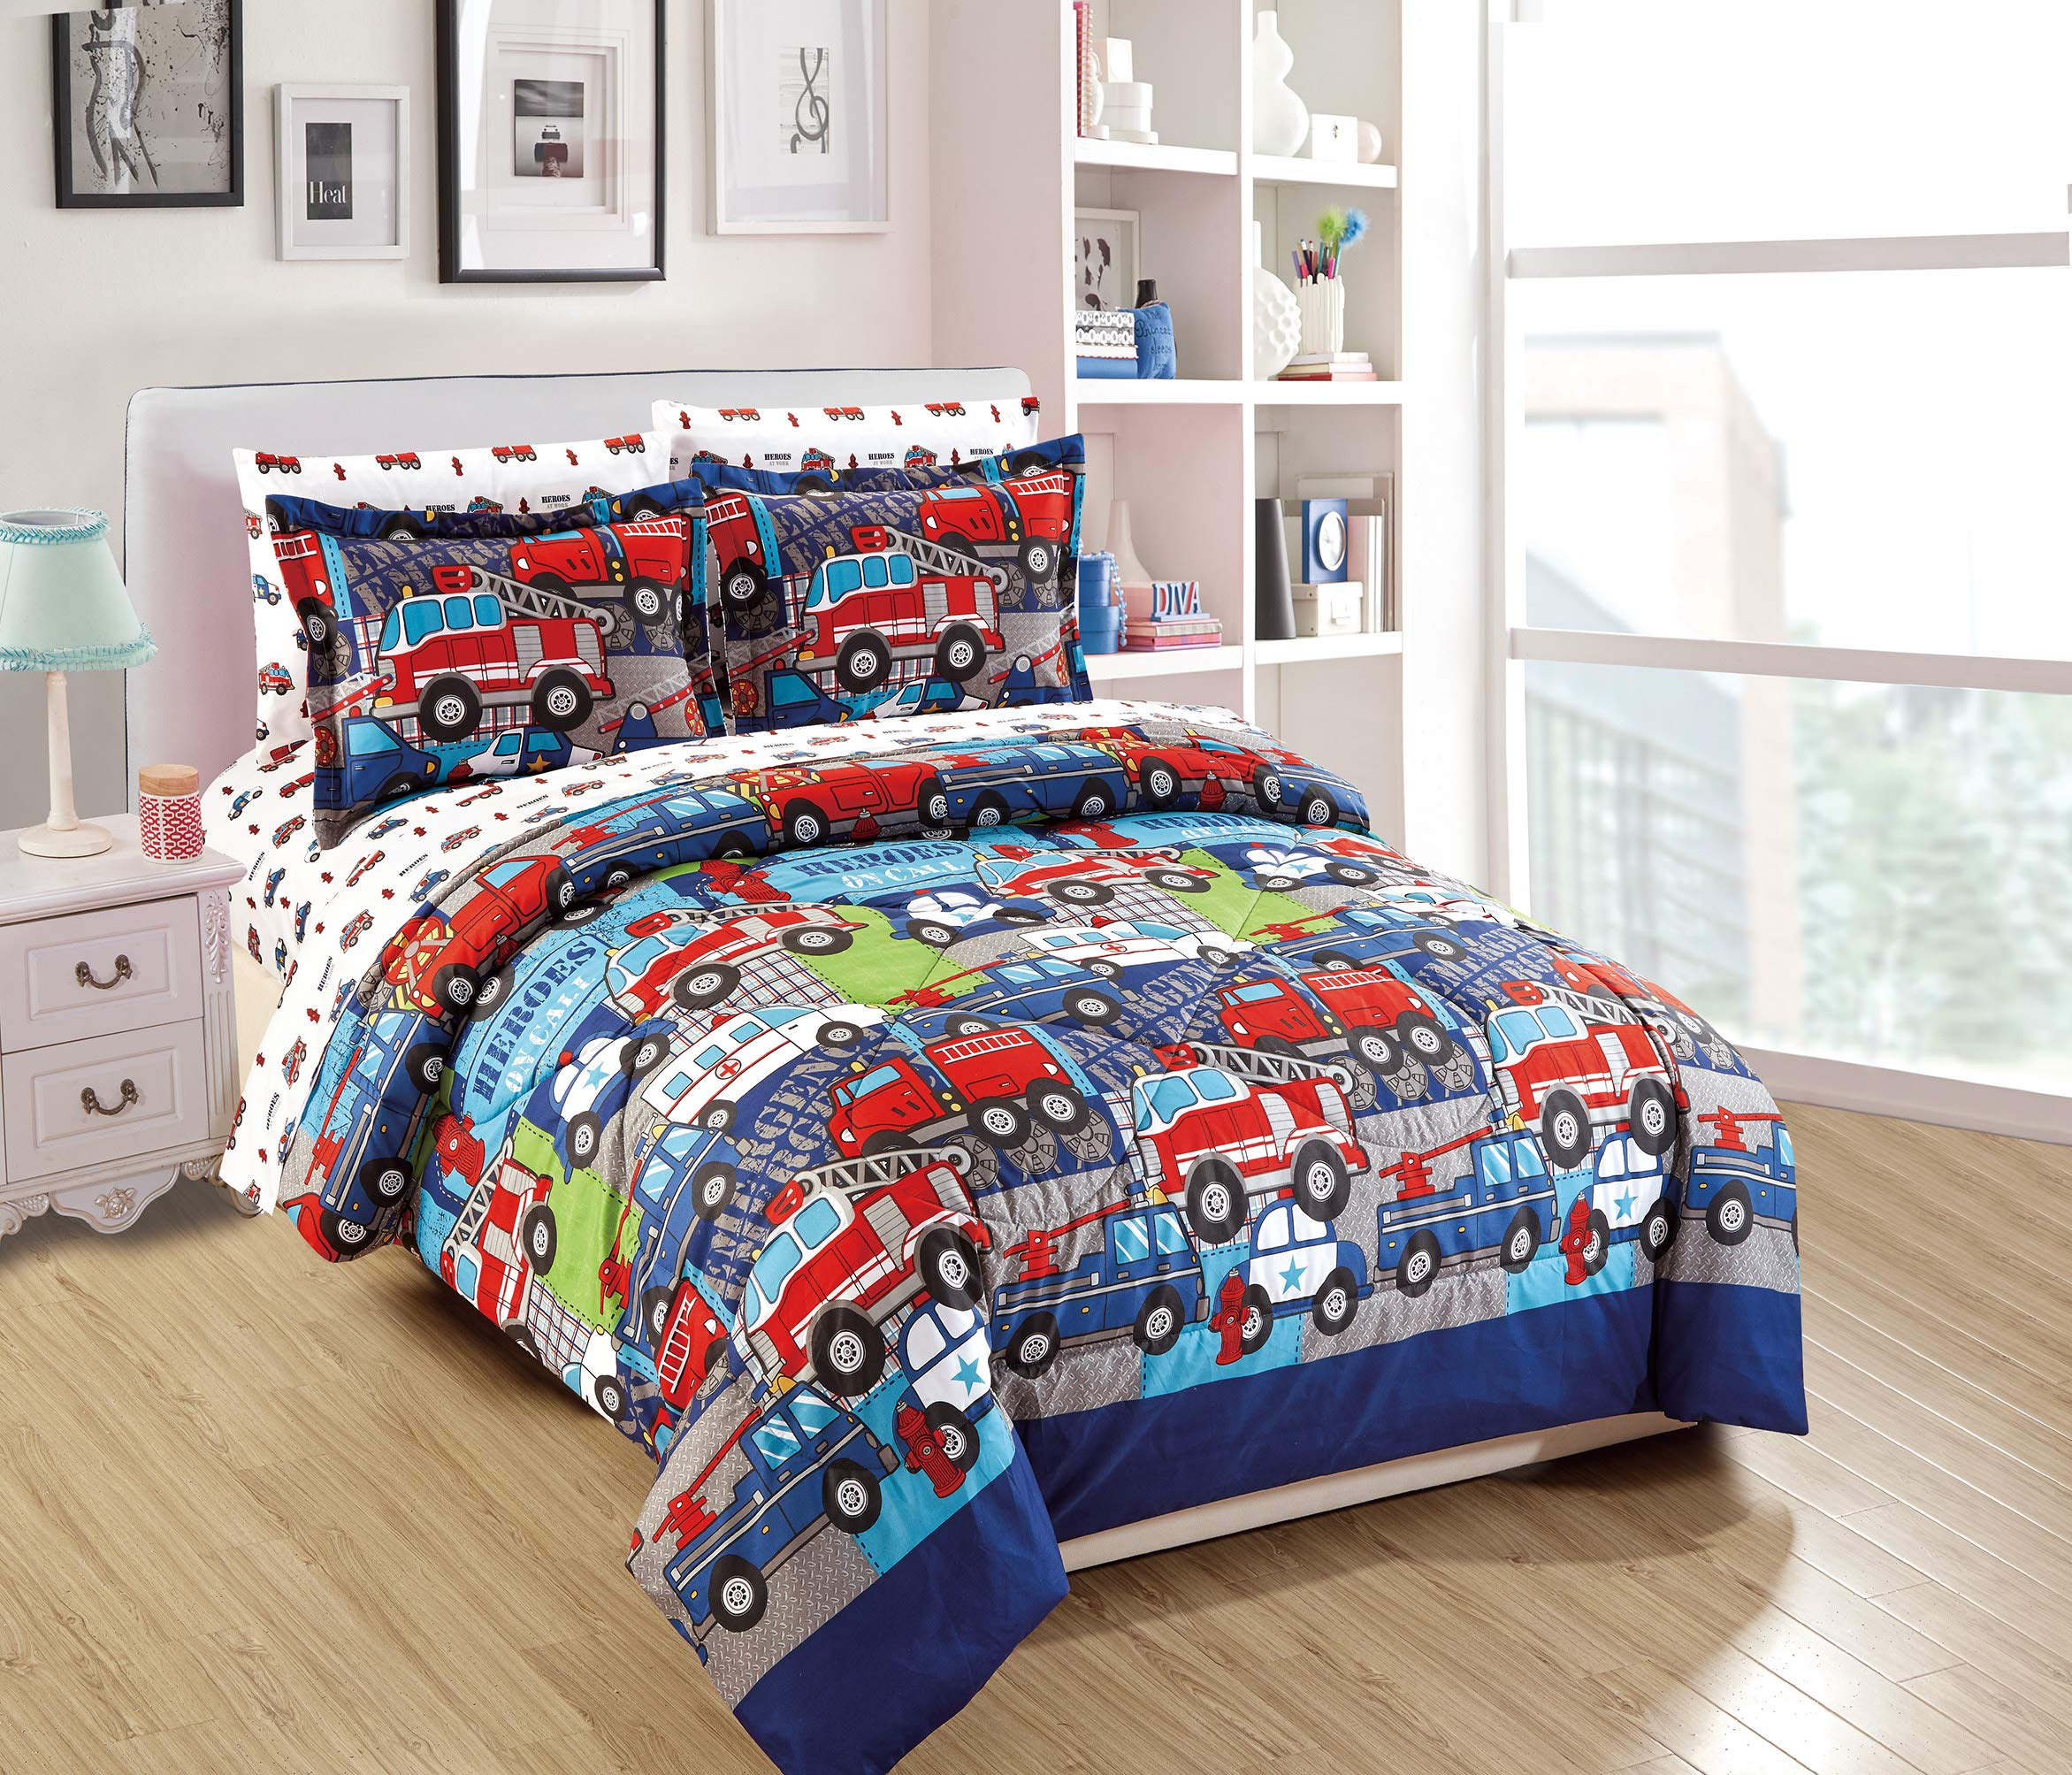 Twin Size 5pc Comforter Set for Kids Heroes Fire Fighter Fire Trucks Police Car Ambulance Paramedic Navy Blue Red White Light Blue Grey Green New by Linen Plus